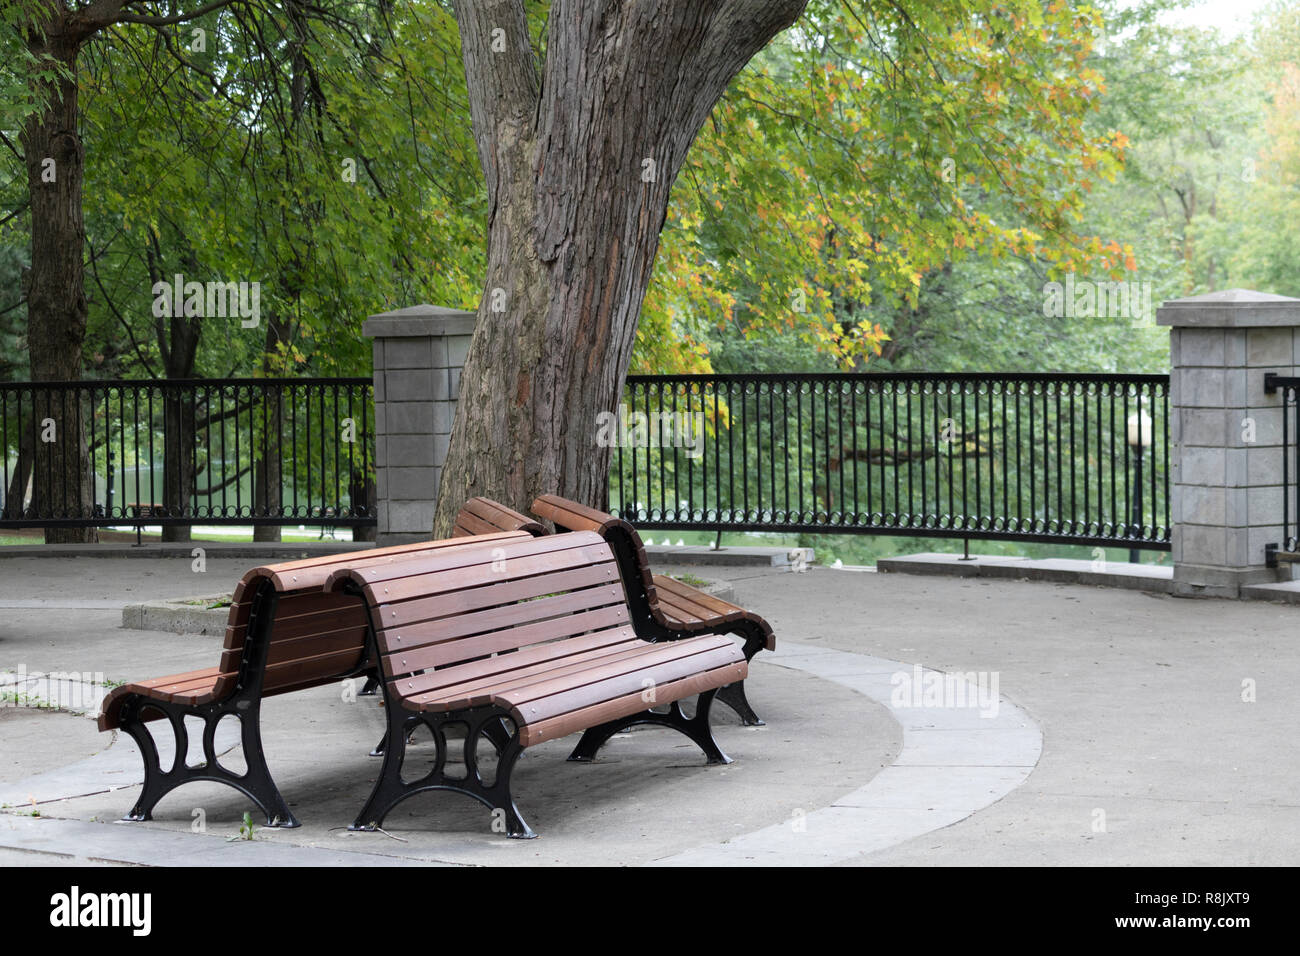 2 benches besides an big old tree in a city park Stock Photo